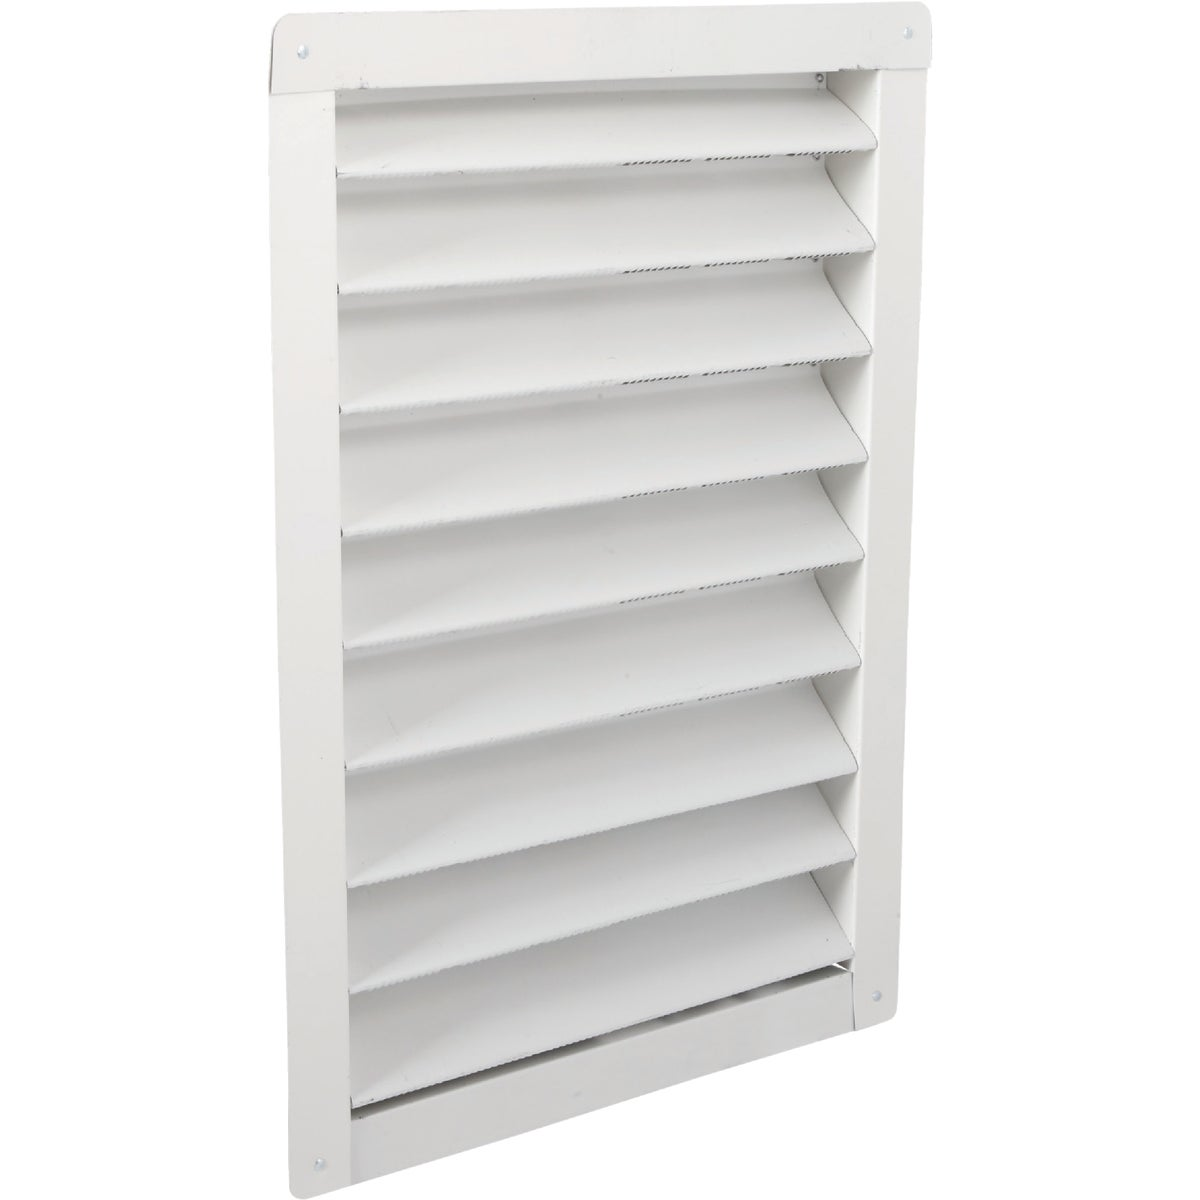 12X18WHT ALM WALL LOUVER - 81214 by Air Vent Inc